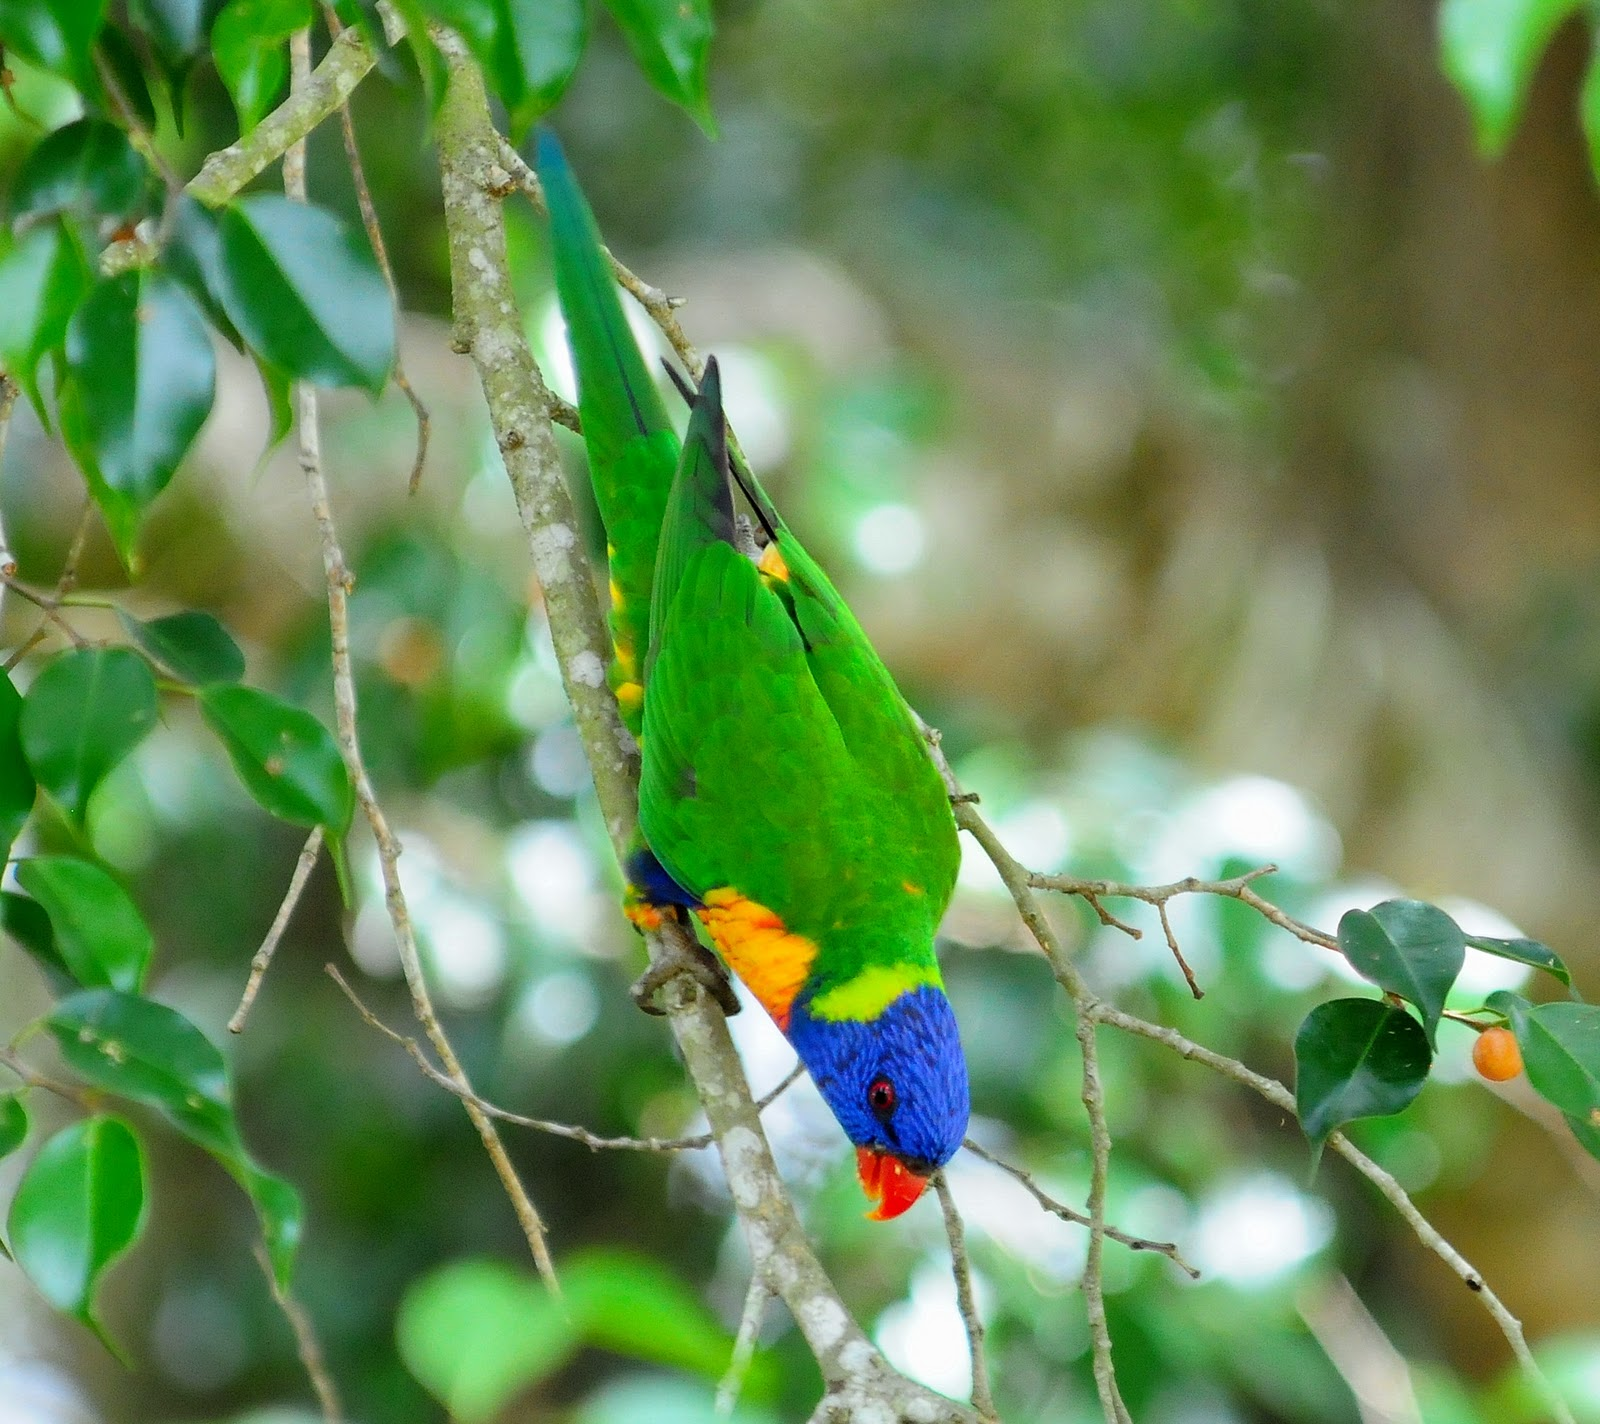 One of the more vocal birds rainbow lorikeets are well known for the